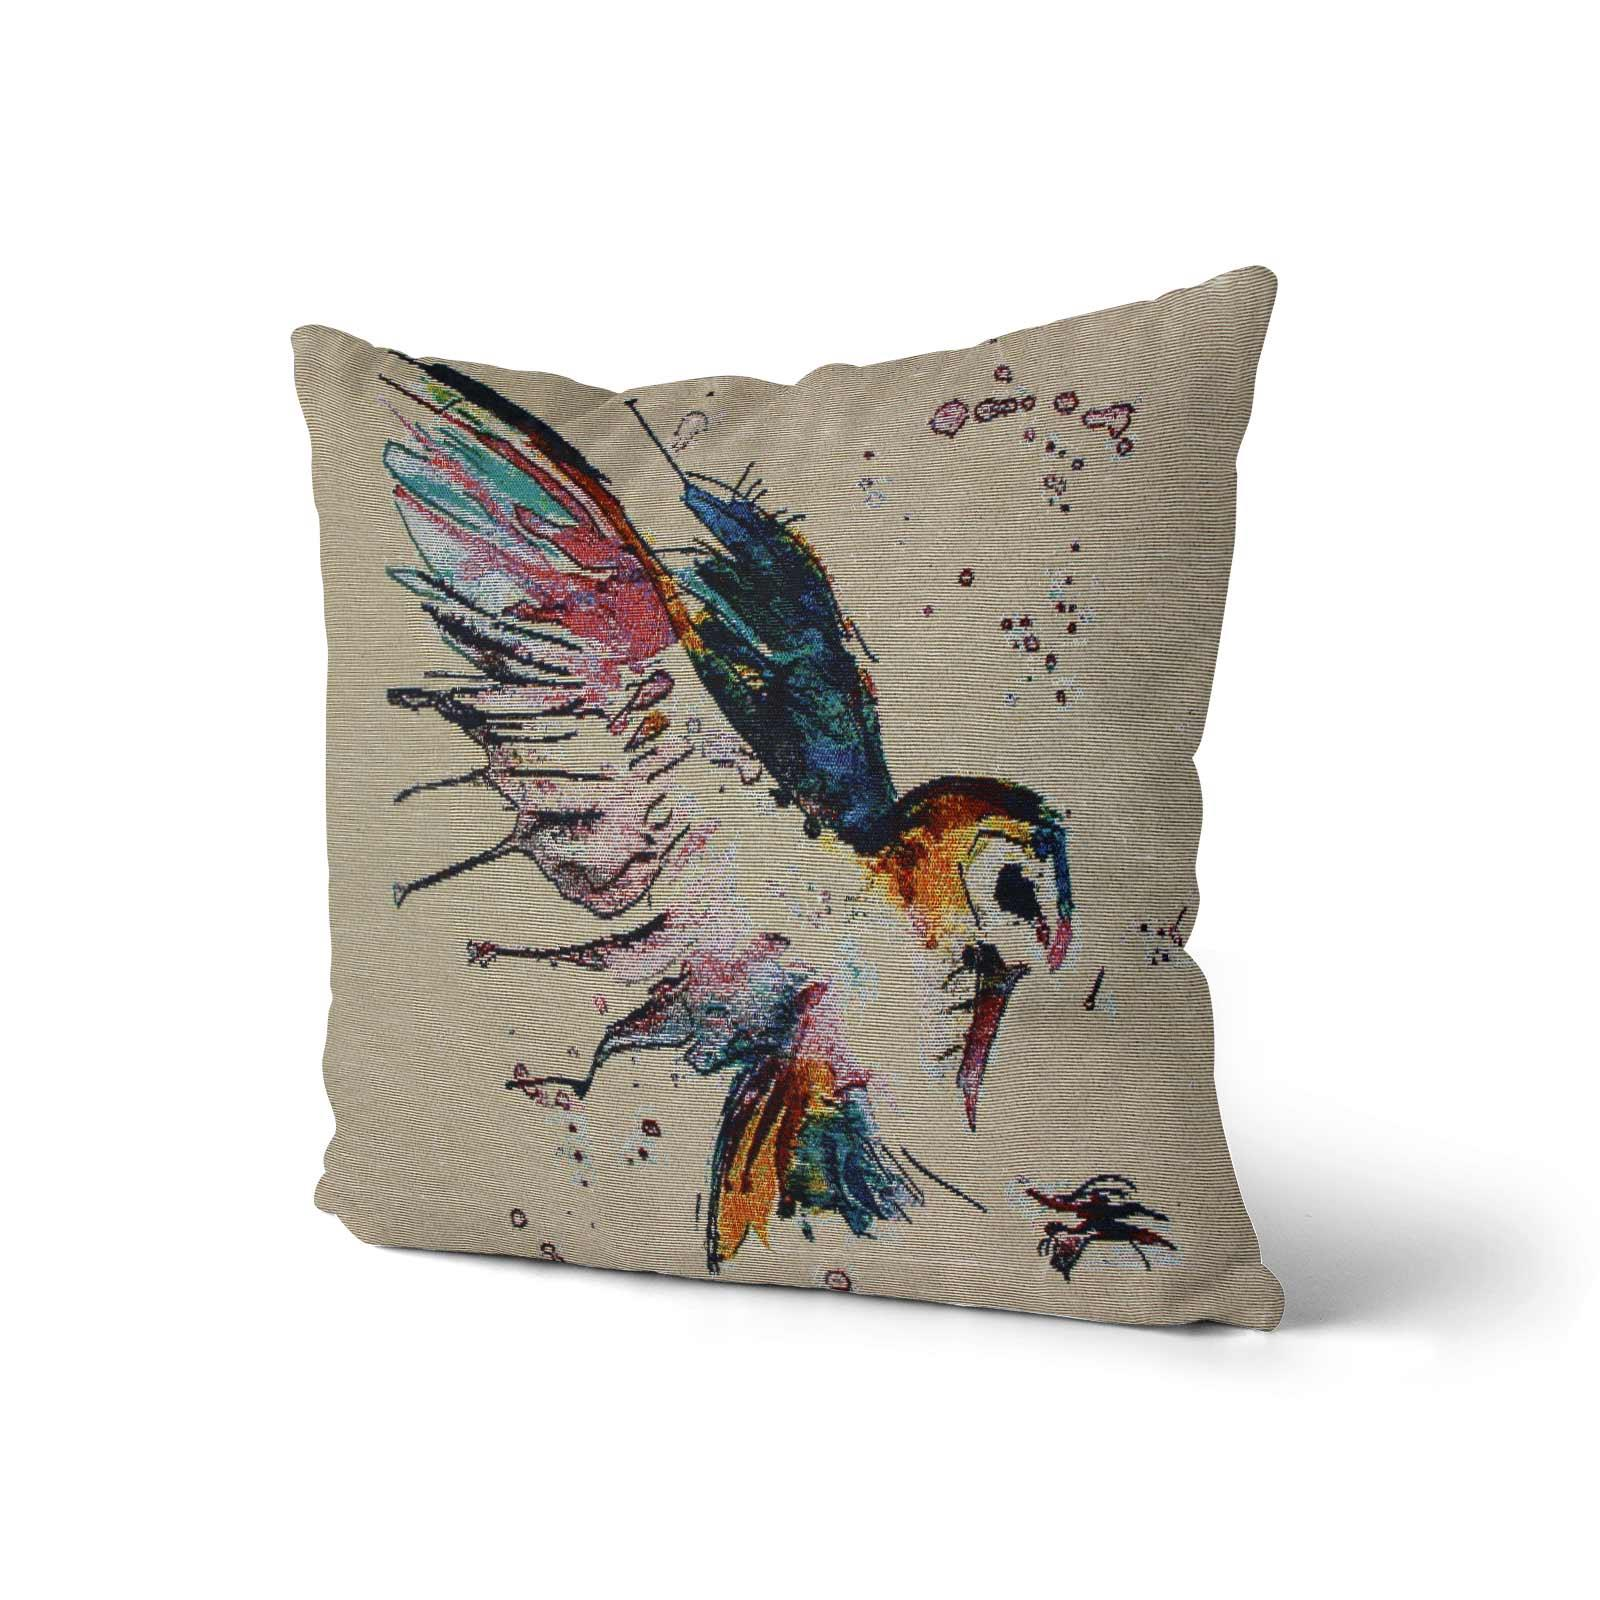 Tapestry-Cushion-Covers-Vintage-Pillow-Cover-Collection-18-034-45cm-Filled-Cushions thumbnail 4